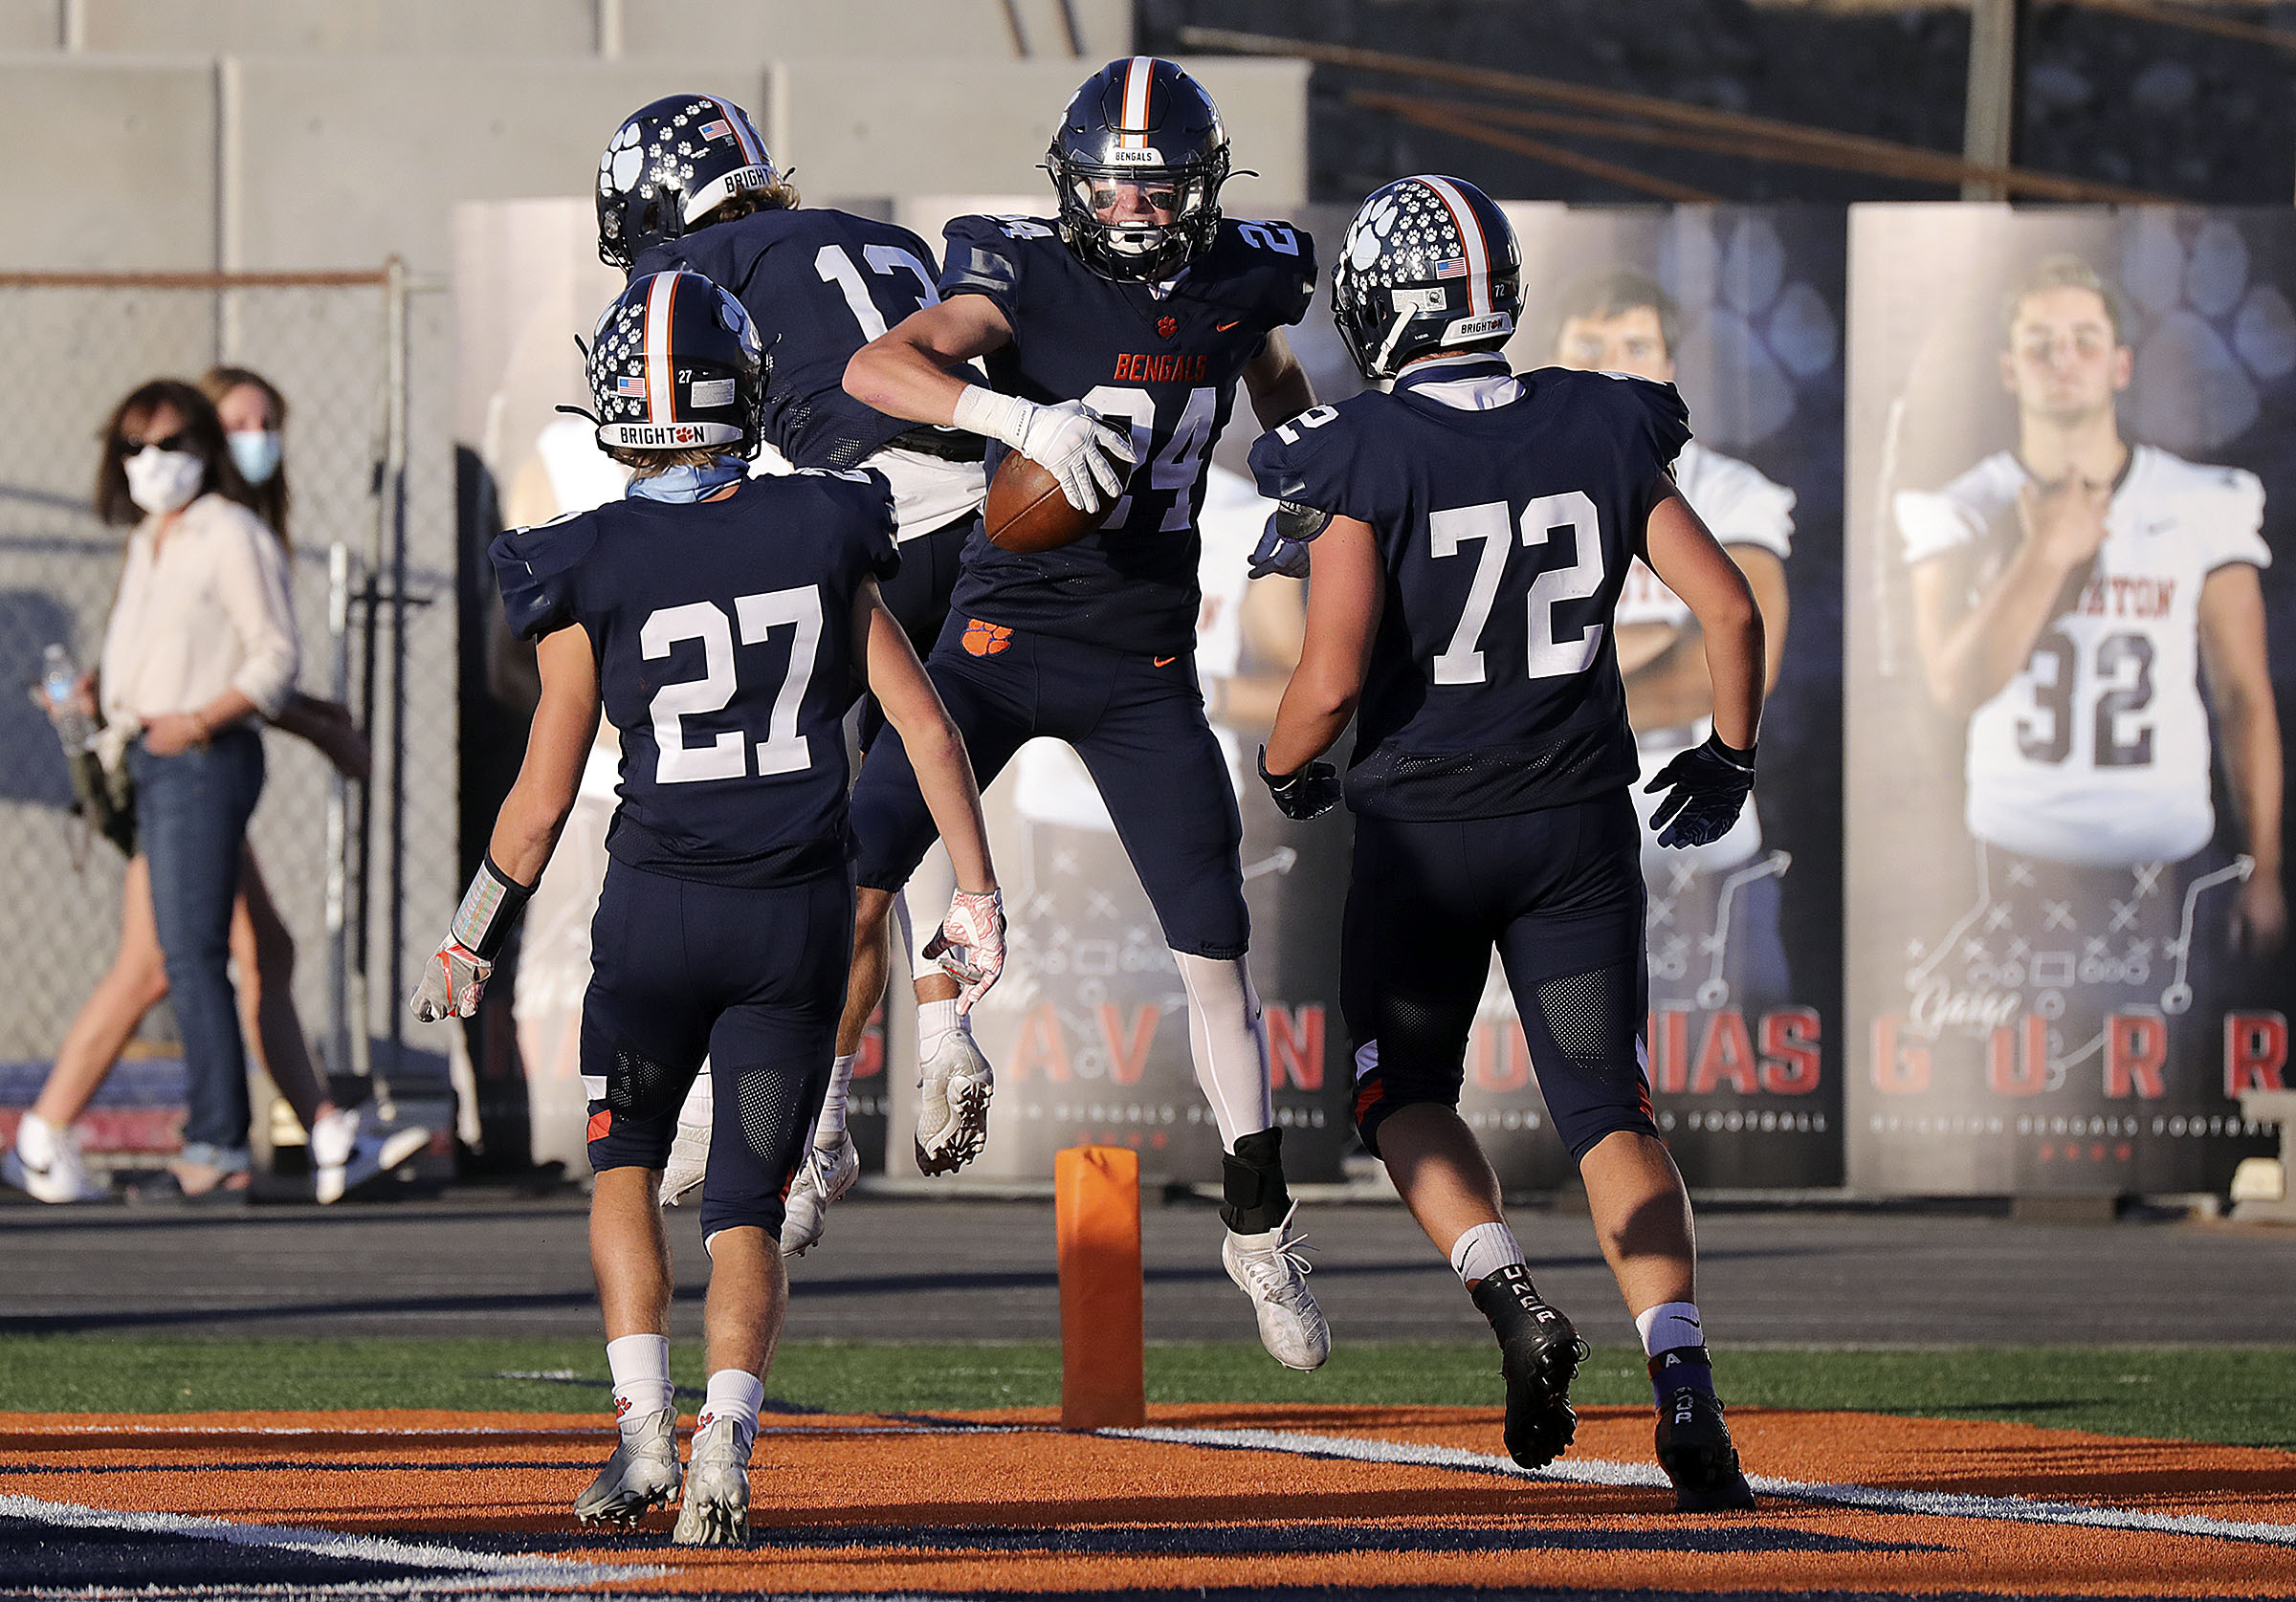 The Brighton Bengals celebrate Collin Edwards' touchdown during a football game against Bountiful at Brighton High School in Cottonwood Heights on Friday, Sept. 4, 2020.